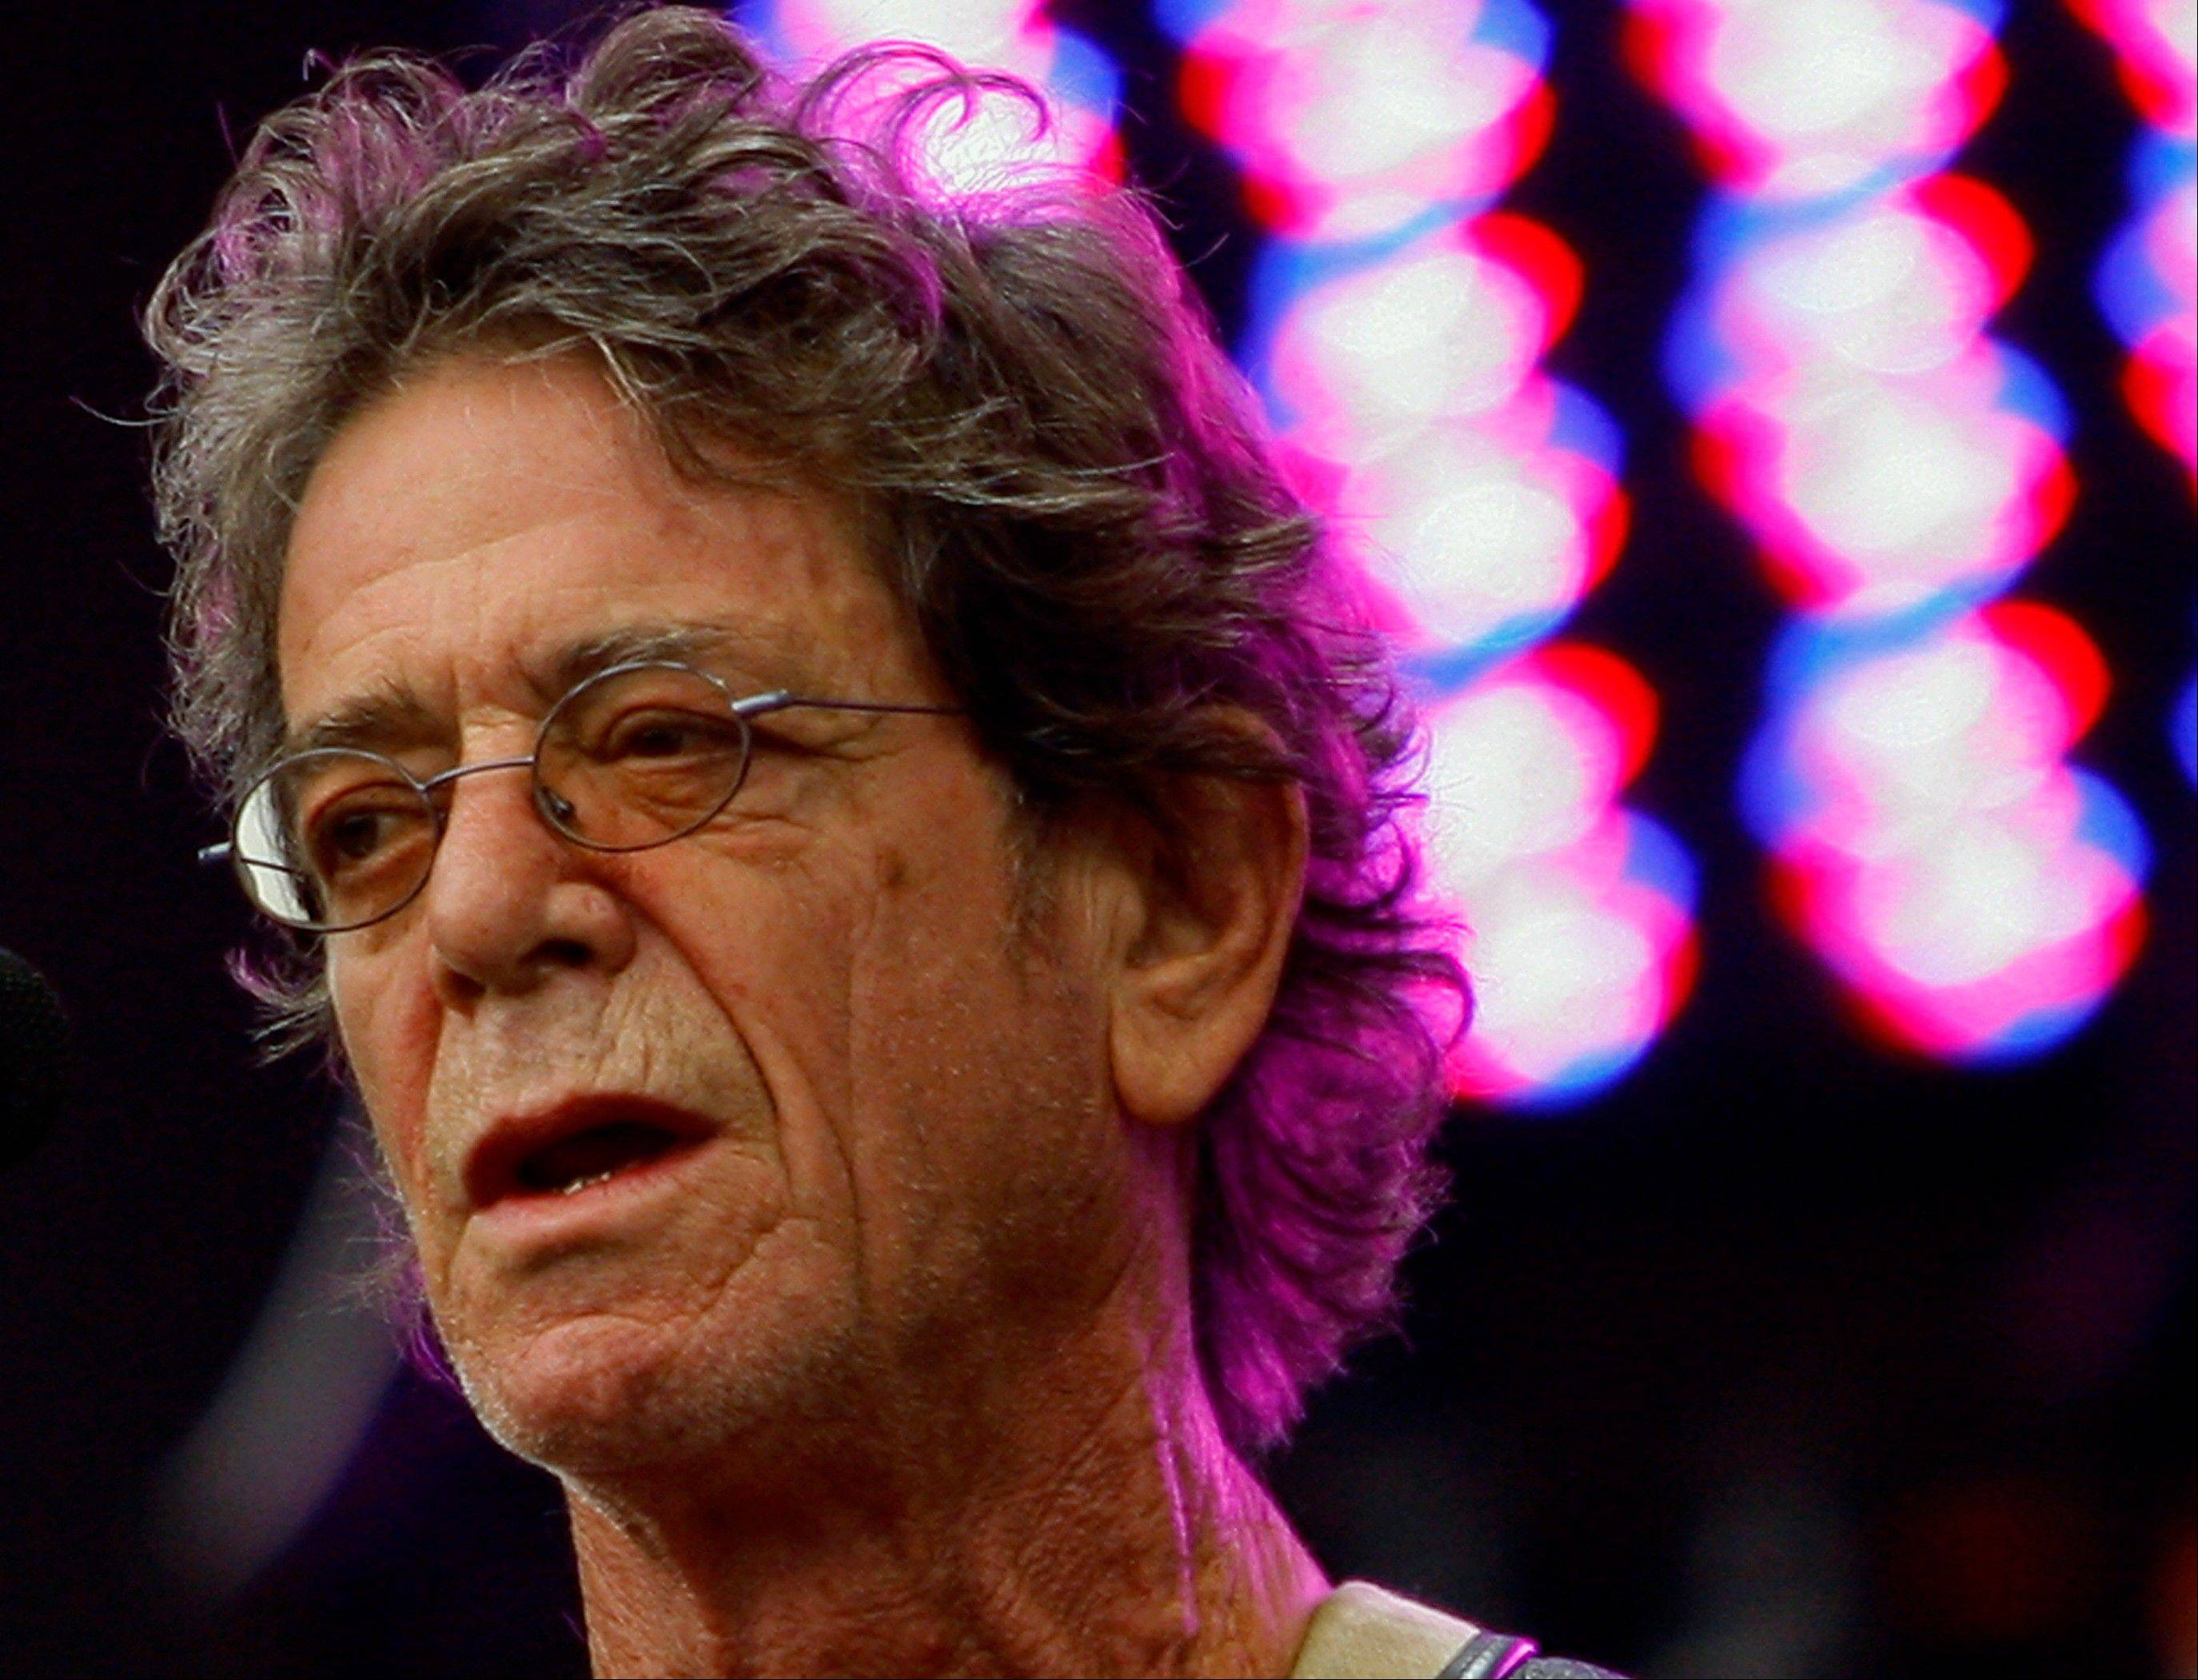 In this Sunday, Aug. 9, 2009 file photo, Lou Reed performs at the Lollapalooza music festival, in Chicago. Lou Reed�s wife says the rock icon is recovering after a life-saving liver transplant, according to an interview published Saturday, June 1, 2013, in a British newspaper. Laurie Anderson told the Times of London that Reed �was dying� before the operation in April at Ohio�s Cleveland Clinic.